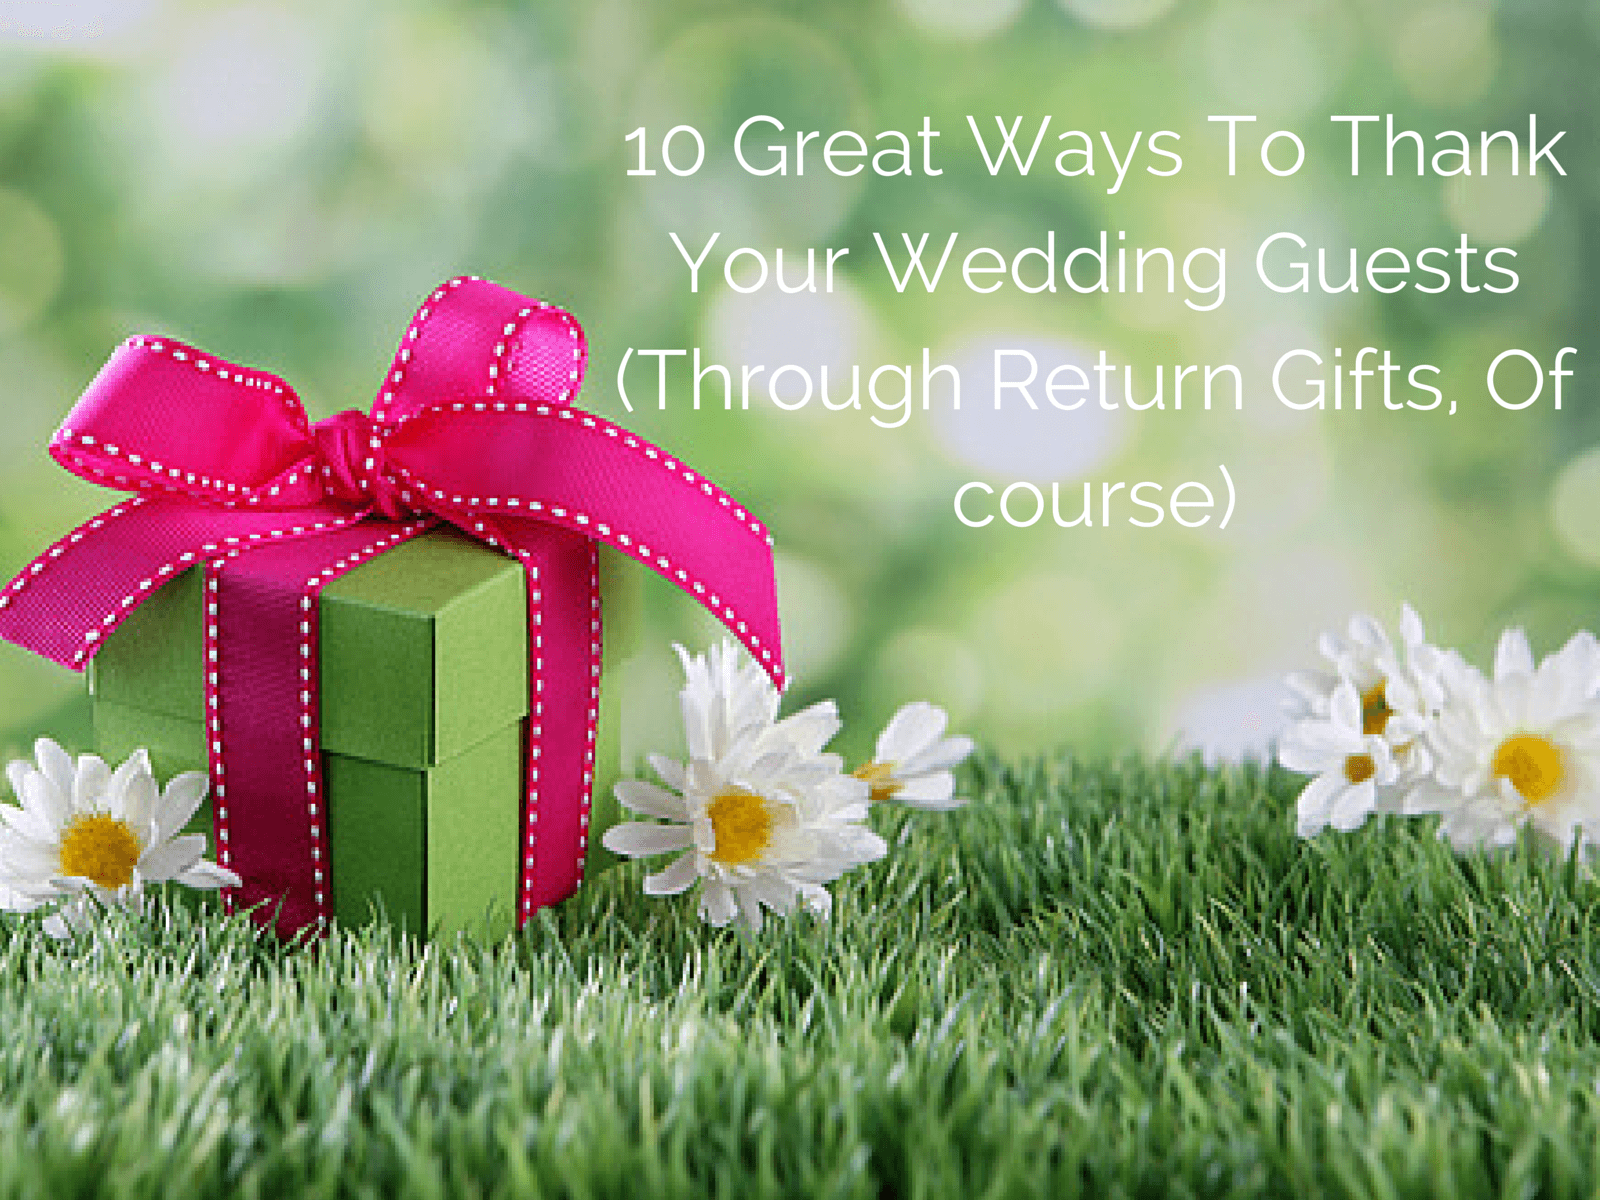 Wedding Gift Ideas For Guests:10 Great Ways to Thank Them May 5, 2015 ...